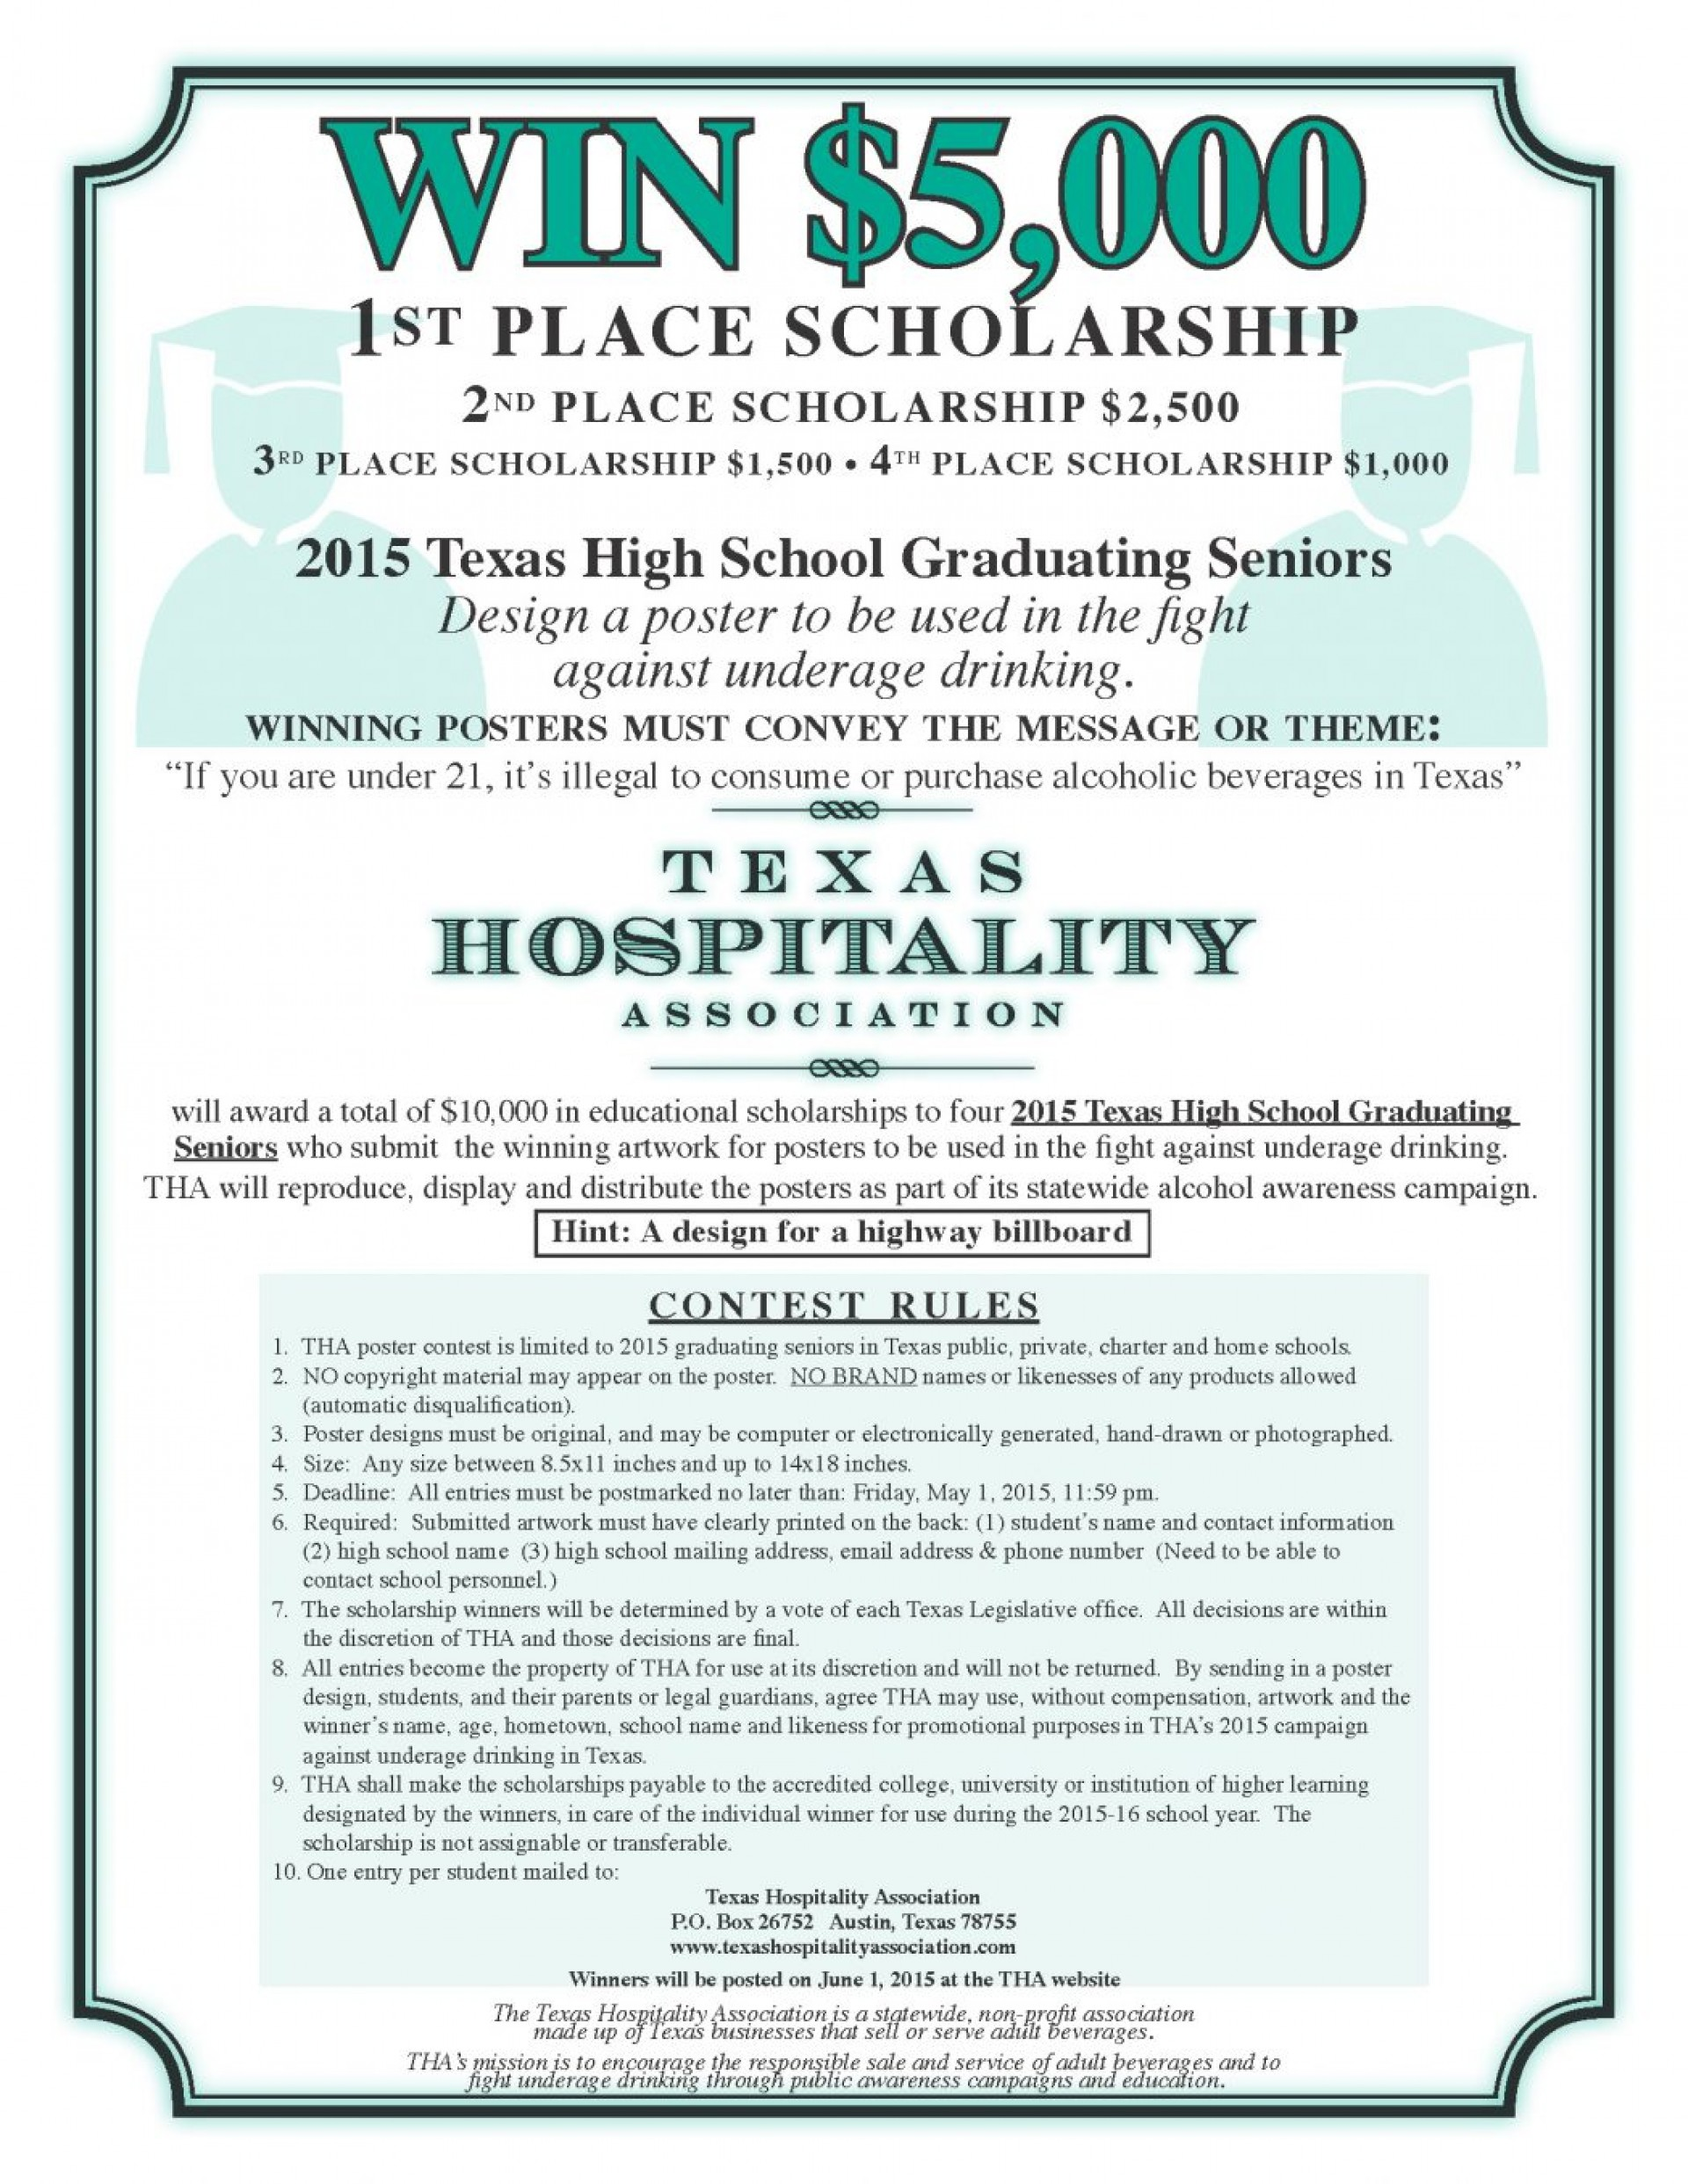 009 Easy Scholarships For High School Seniors Without Essays Research Students No Essay Scholarshi 1048x1356 Stunning Requirements Required In Texas 1920